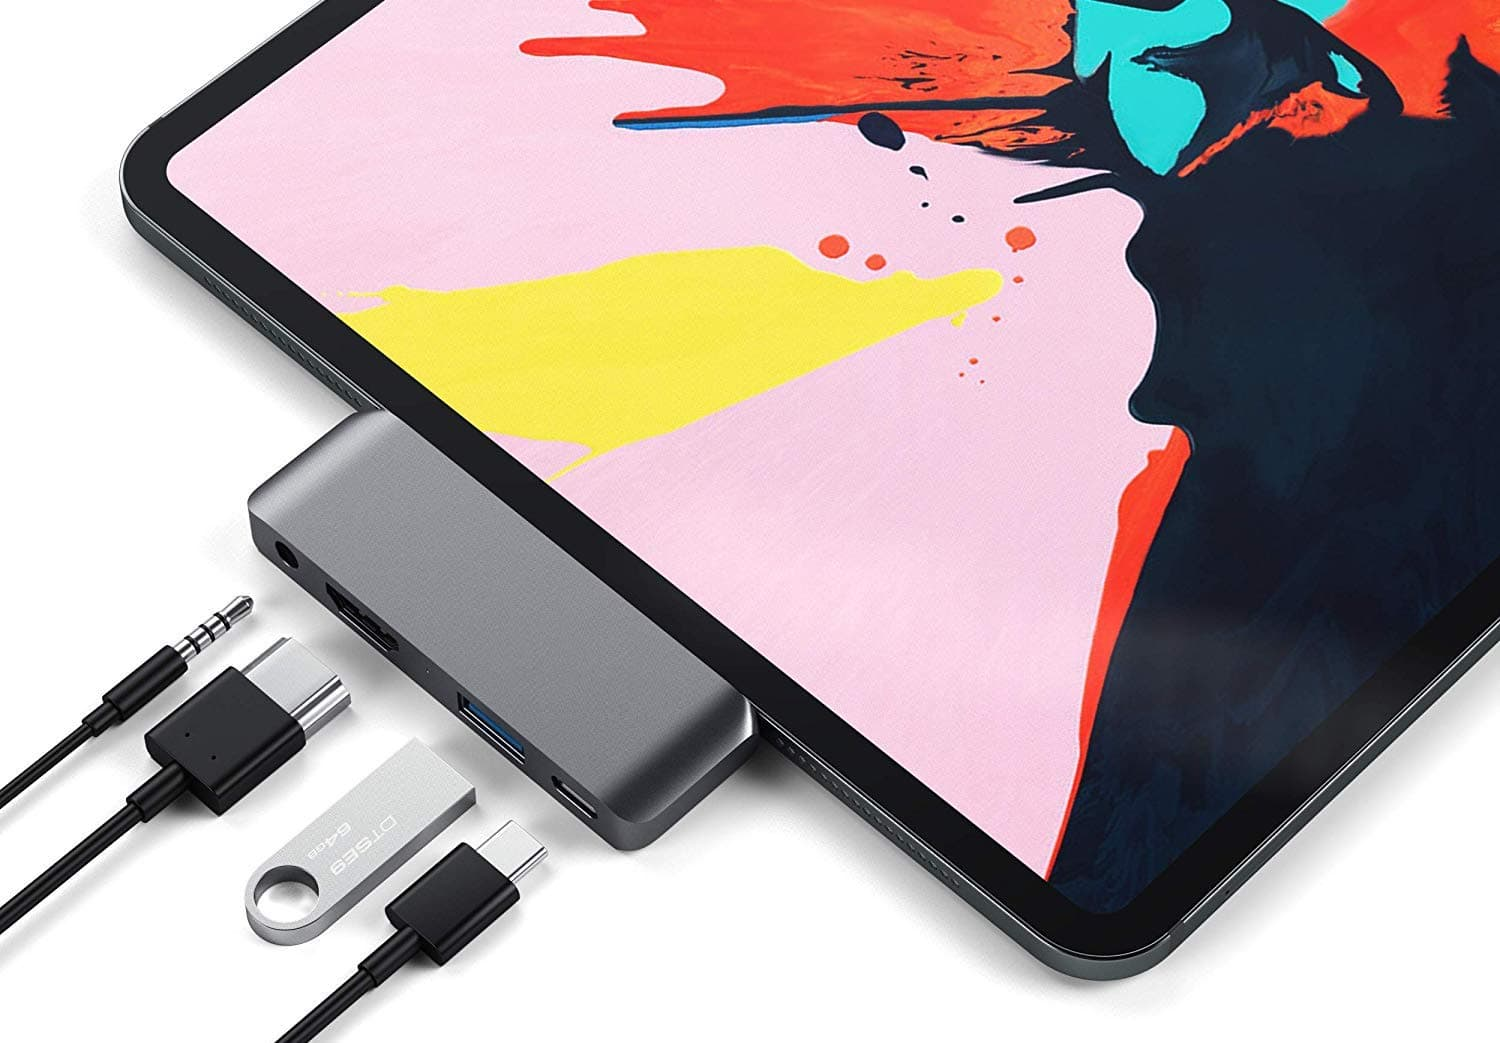 Make the most of your iPad Pro with these accessories